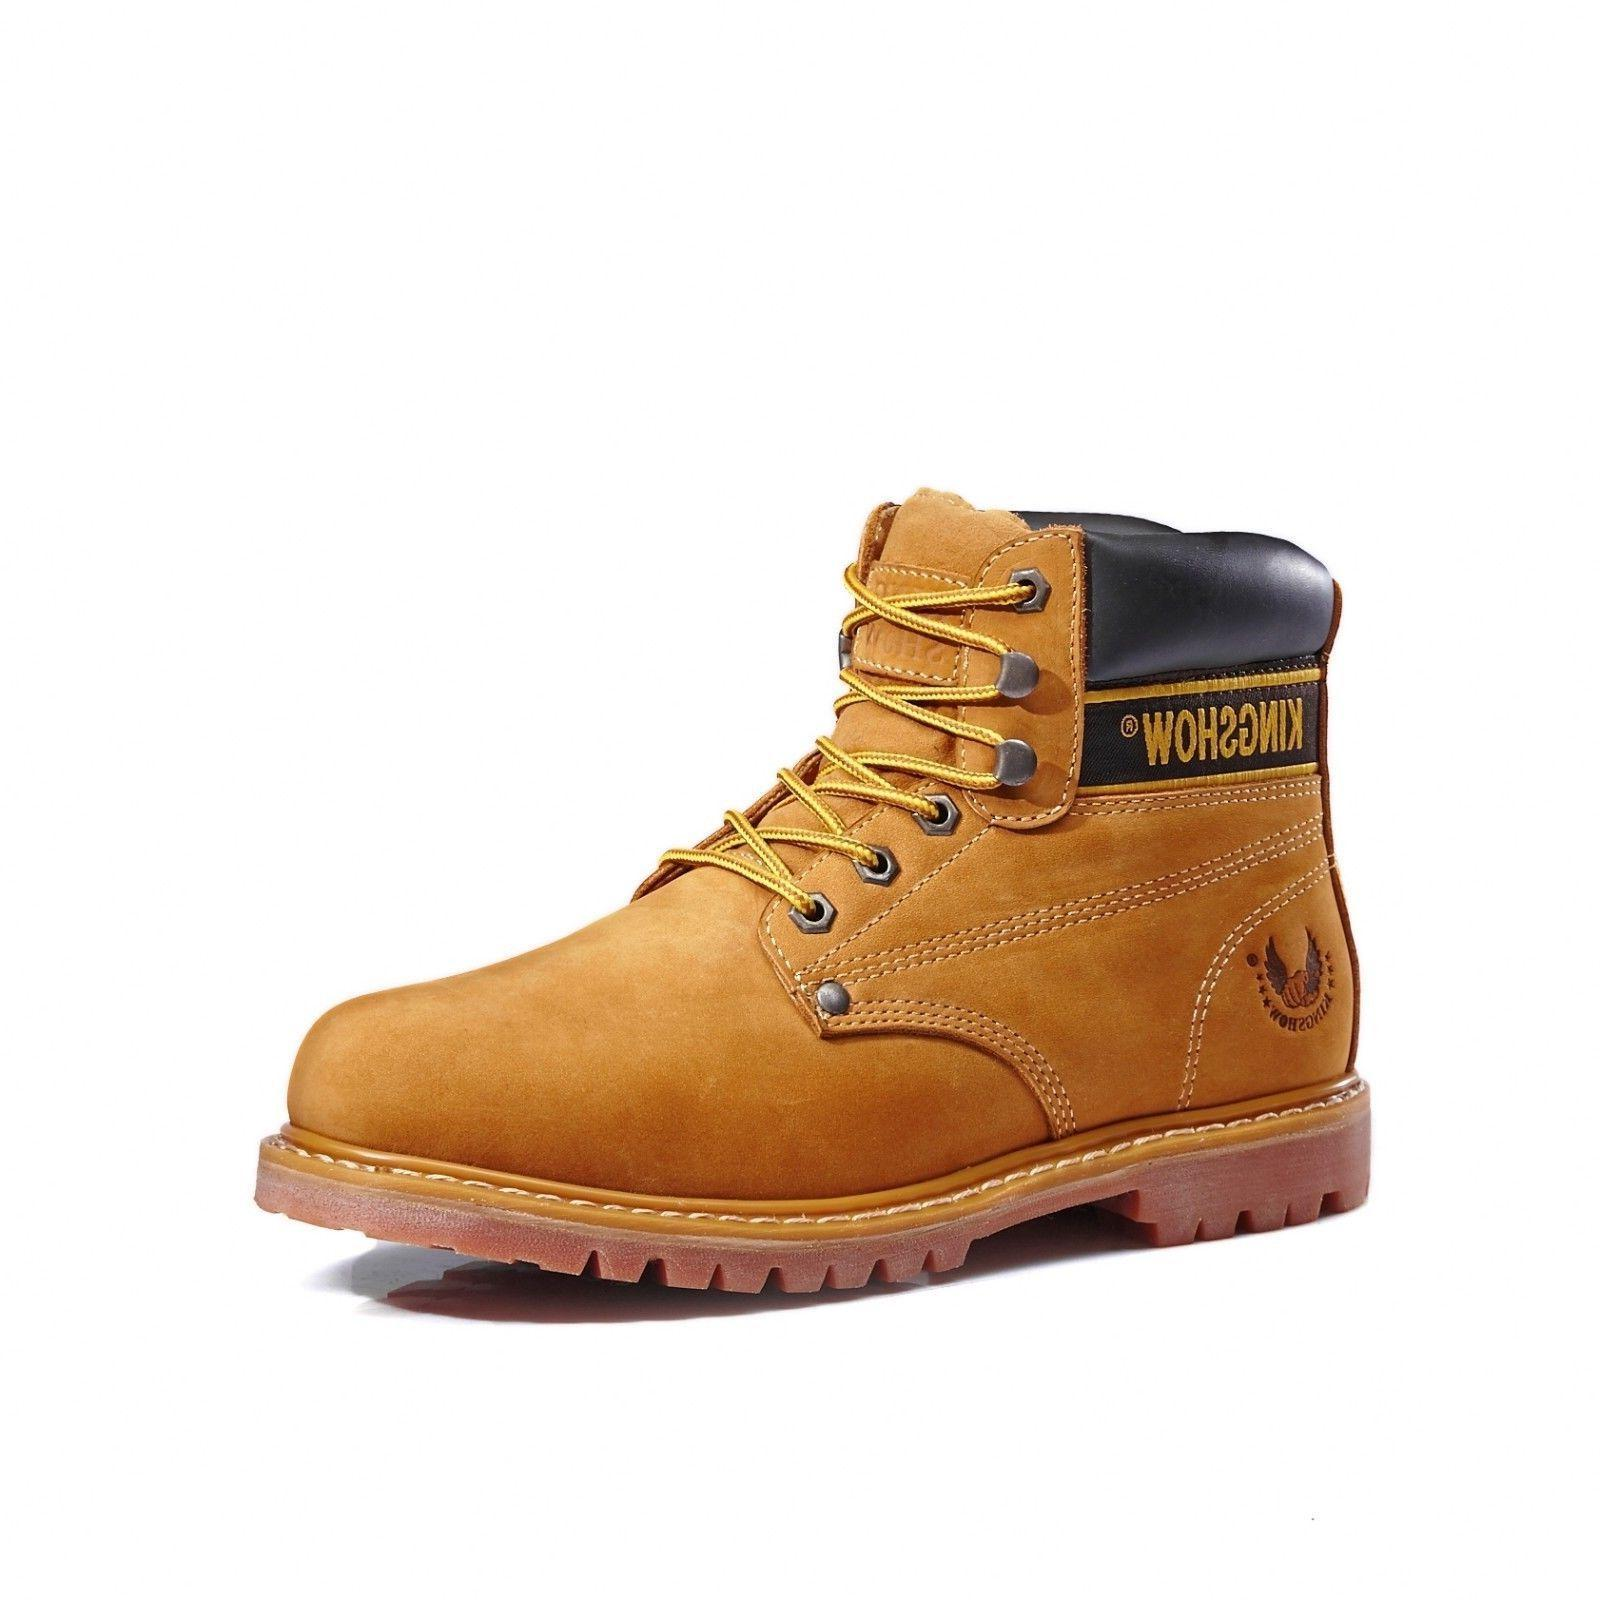 Kingshow Work Boots Genuine Leather 8036